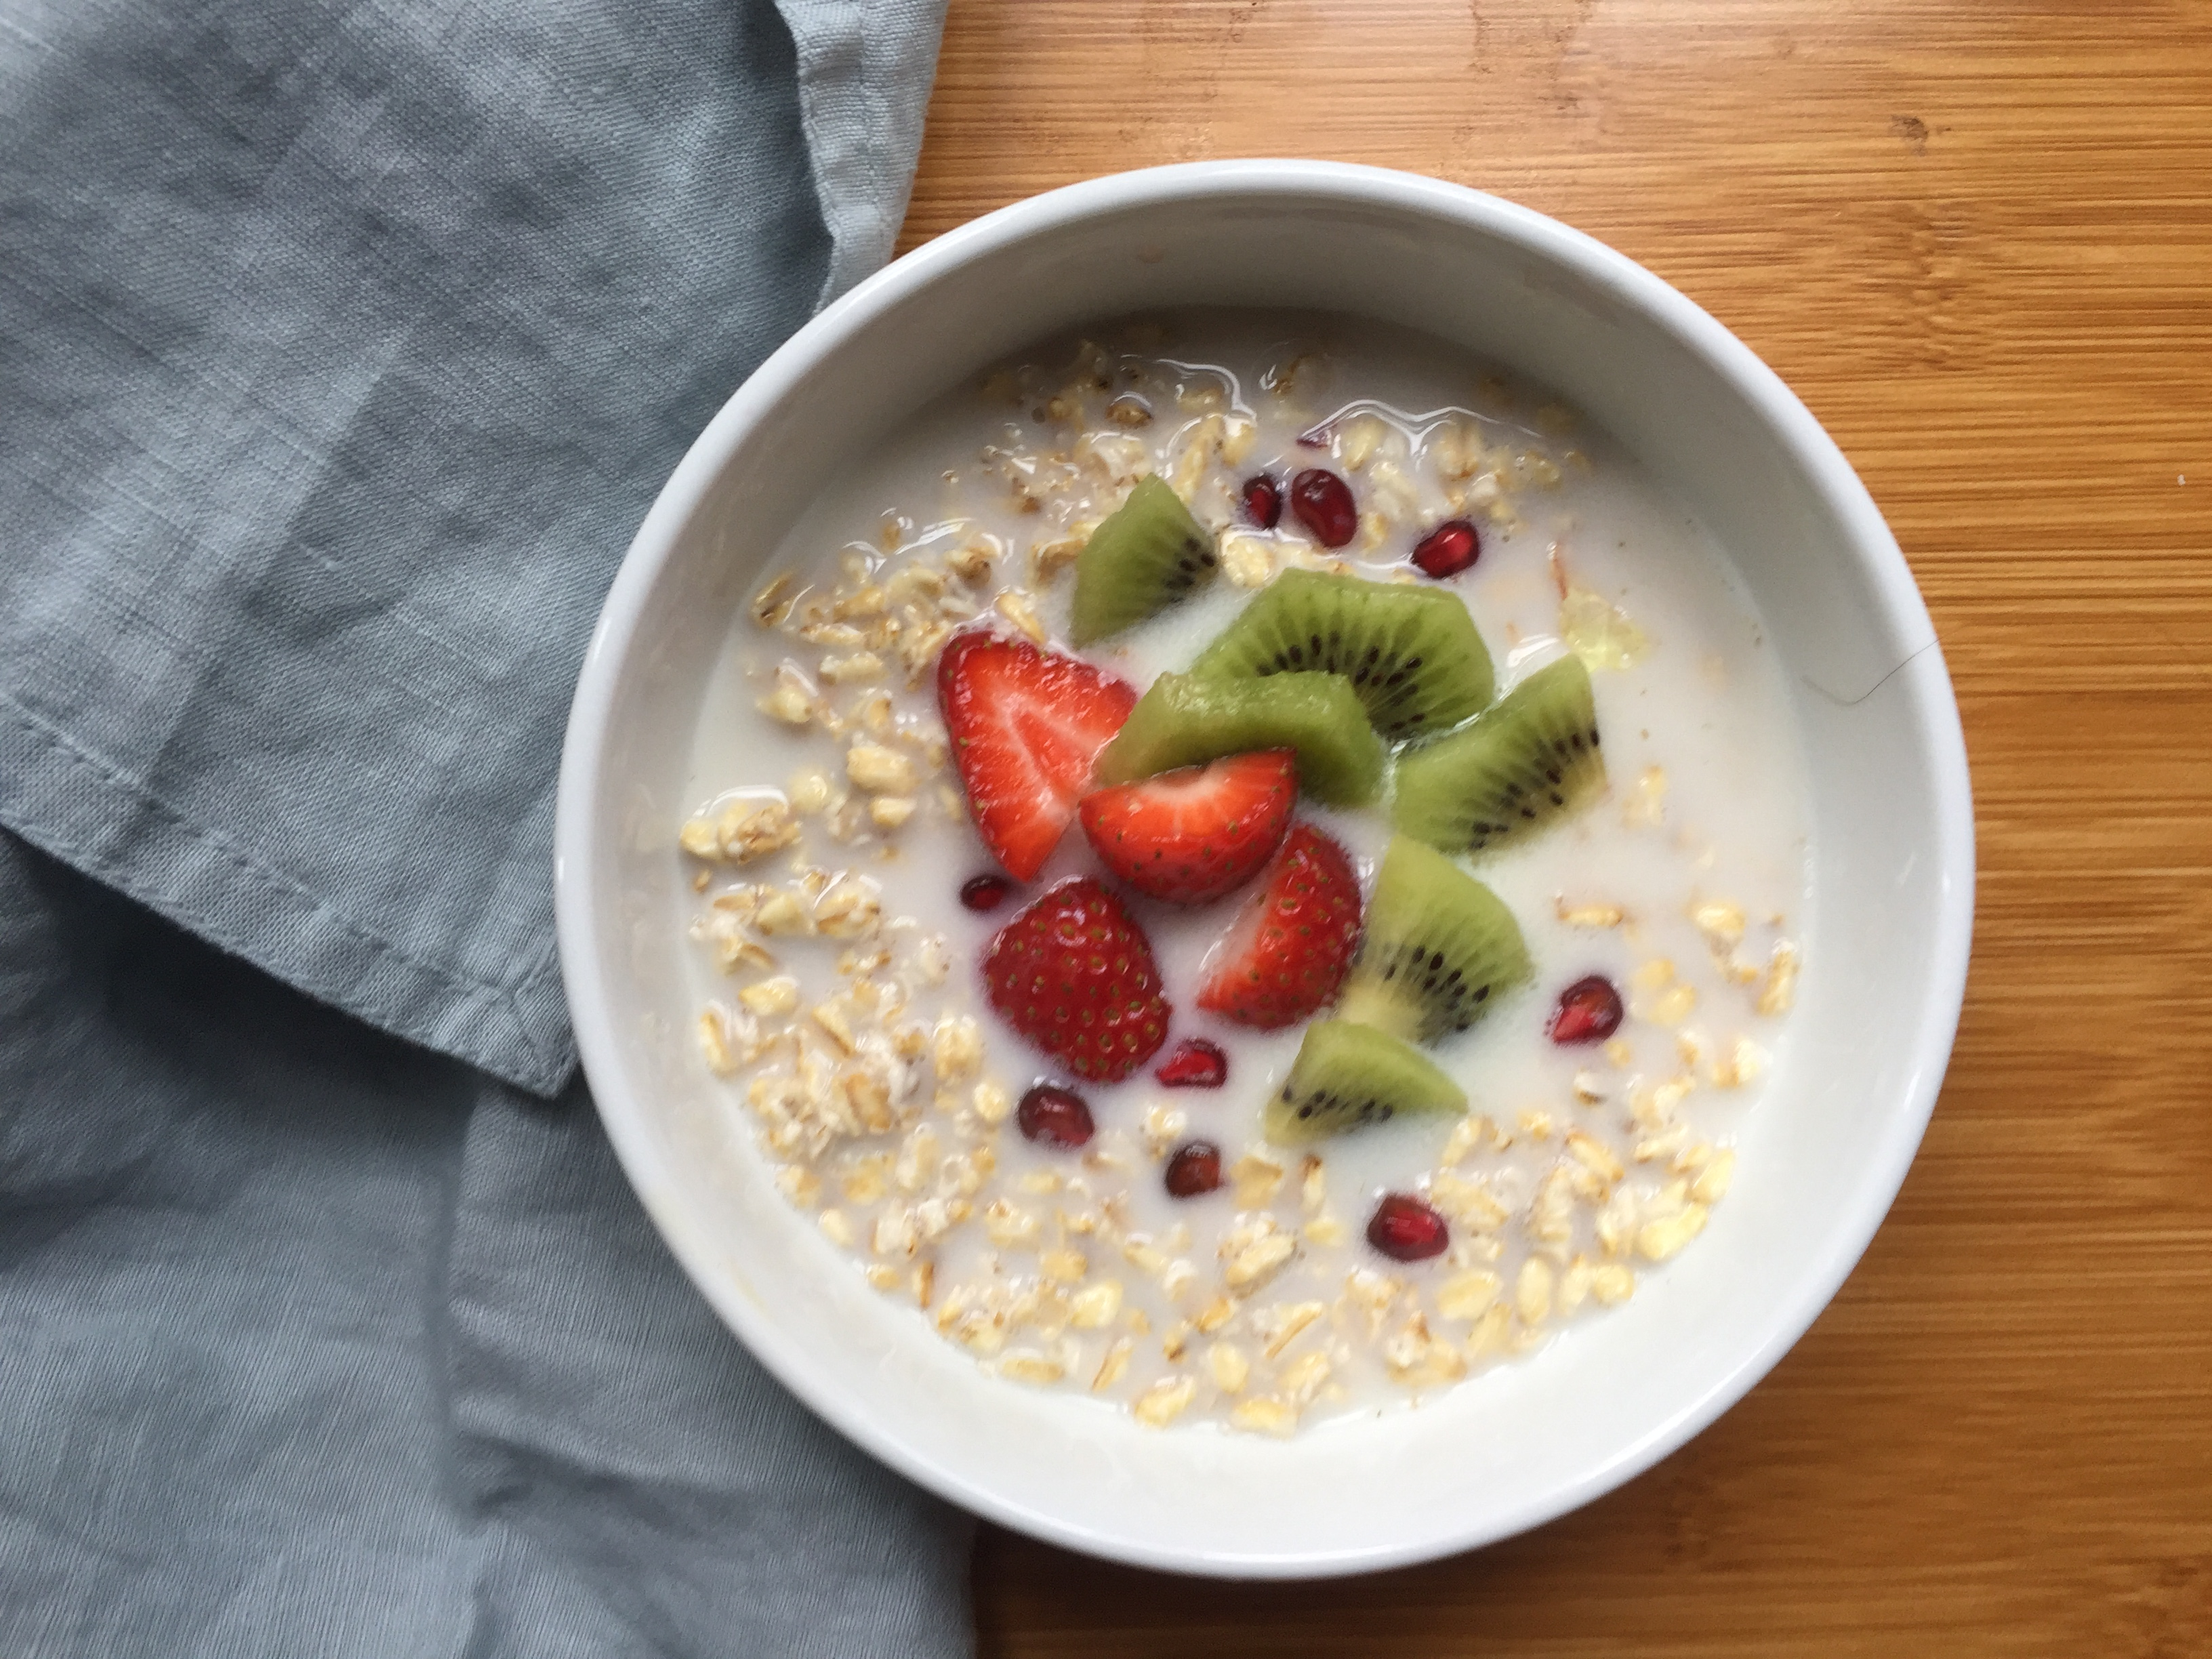 How to make overnight oats